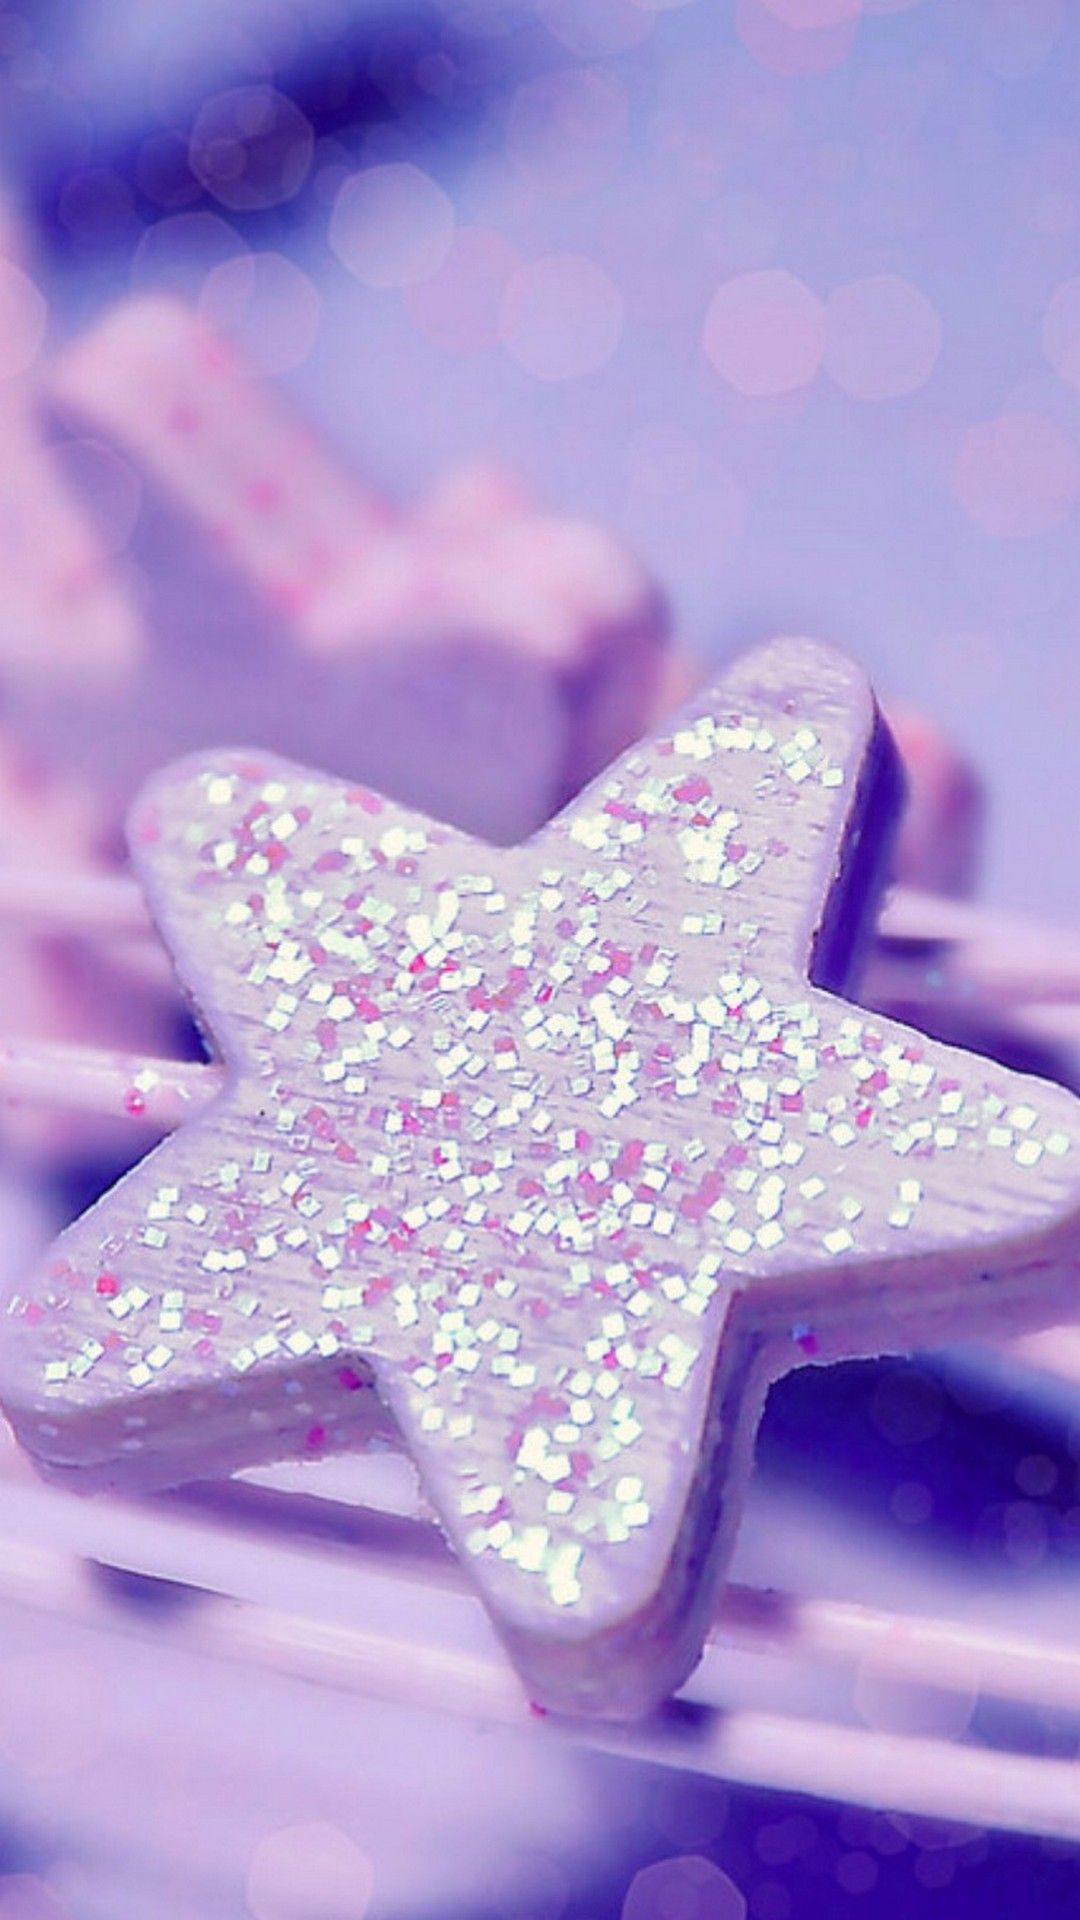 Cute star girly wallpaper android best hd wallpapers search results for beautiful girly wallpapers for mobile adorable wallpapers voltagebd